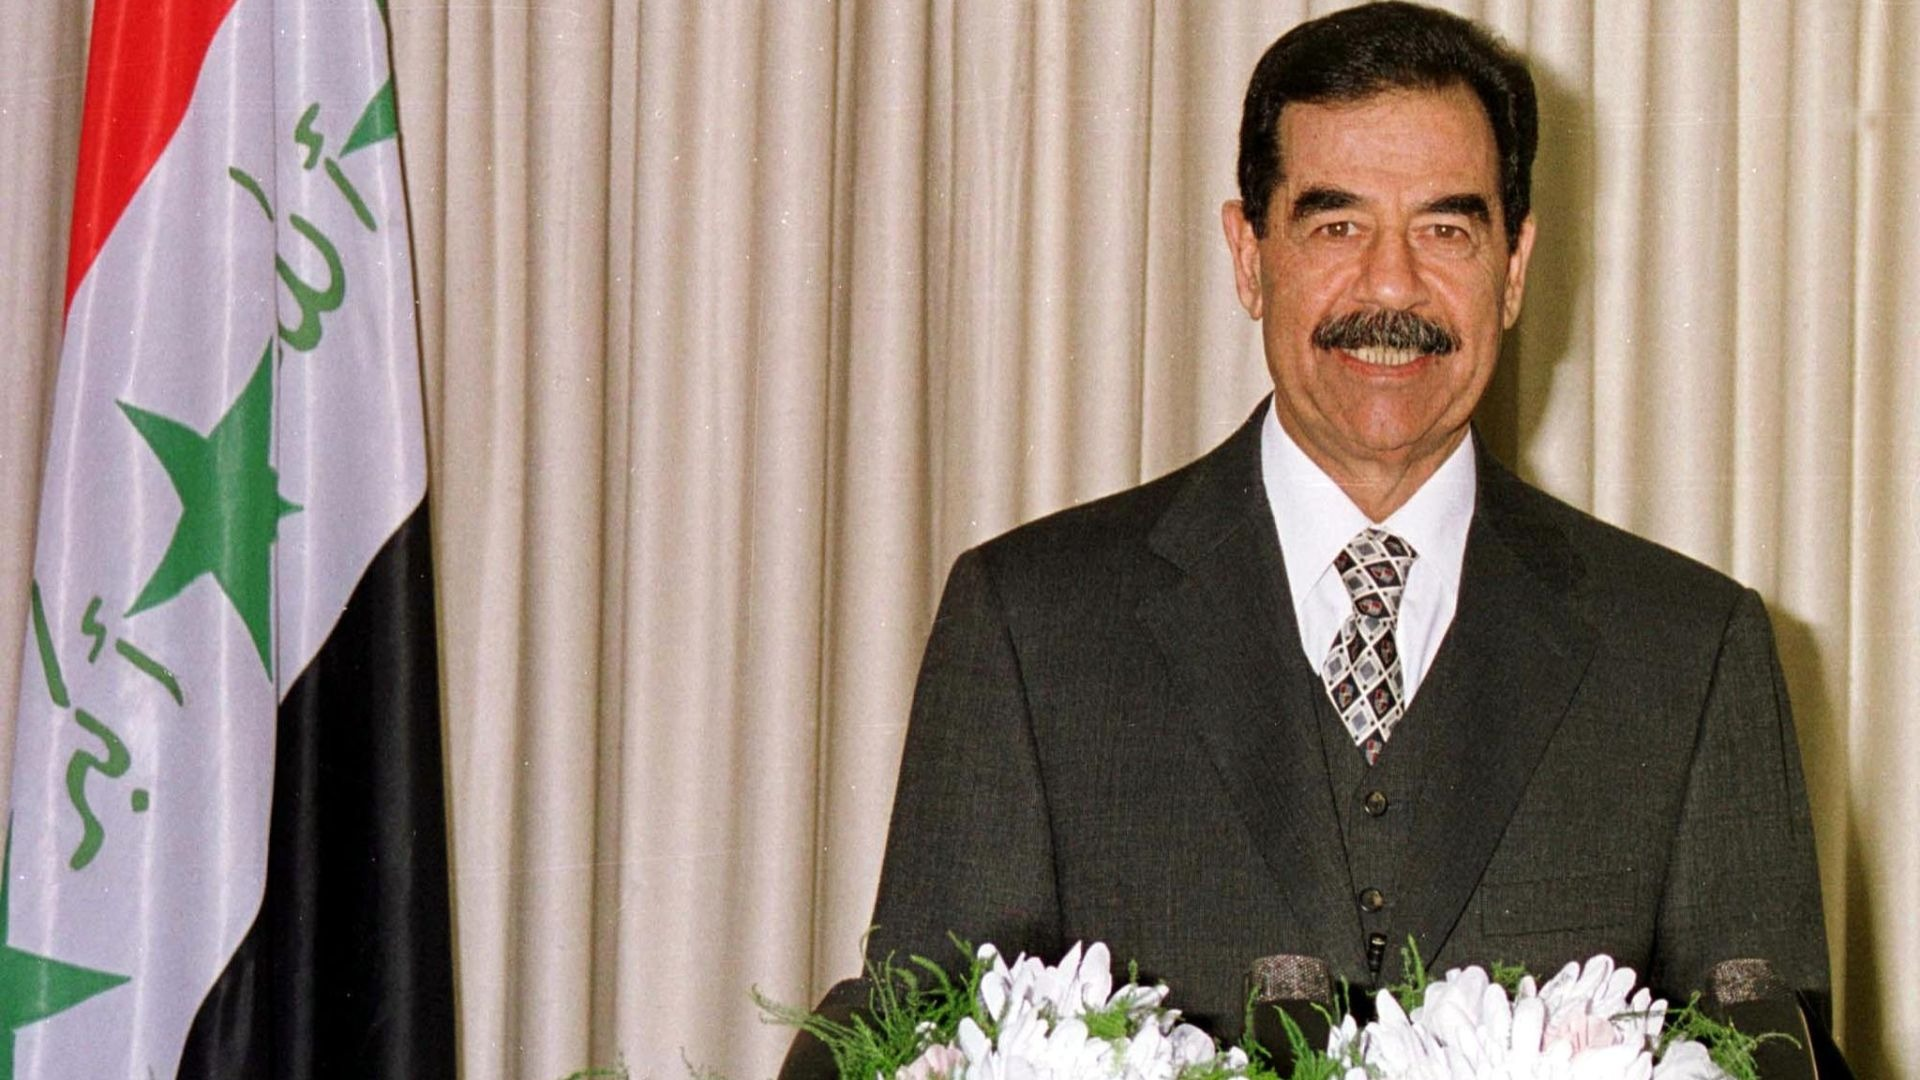 Deceased Iraqi leader Saddam Hussein.